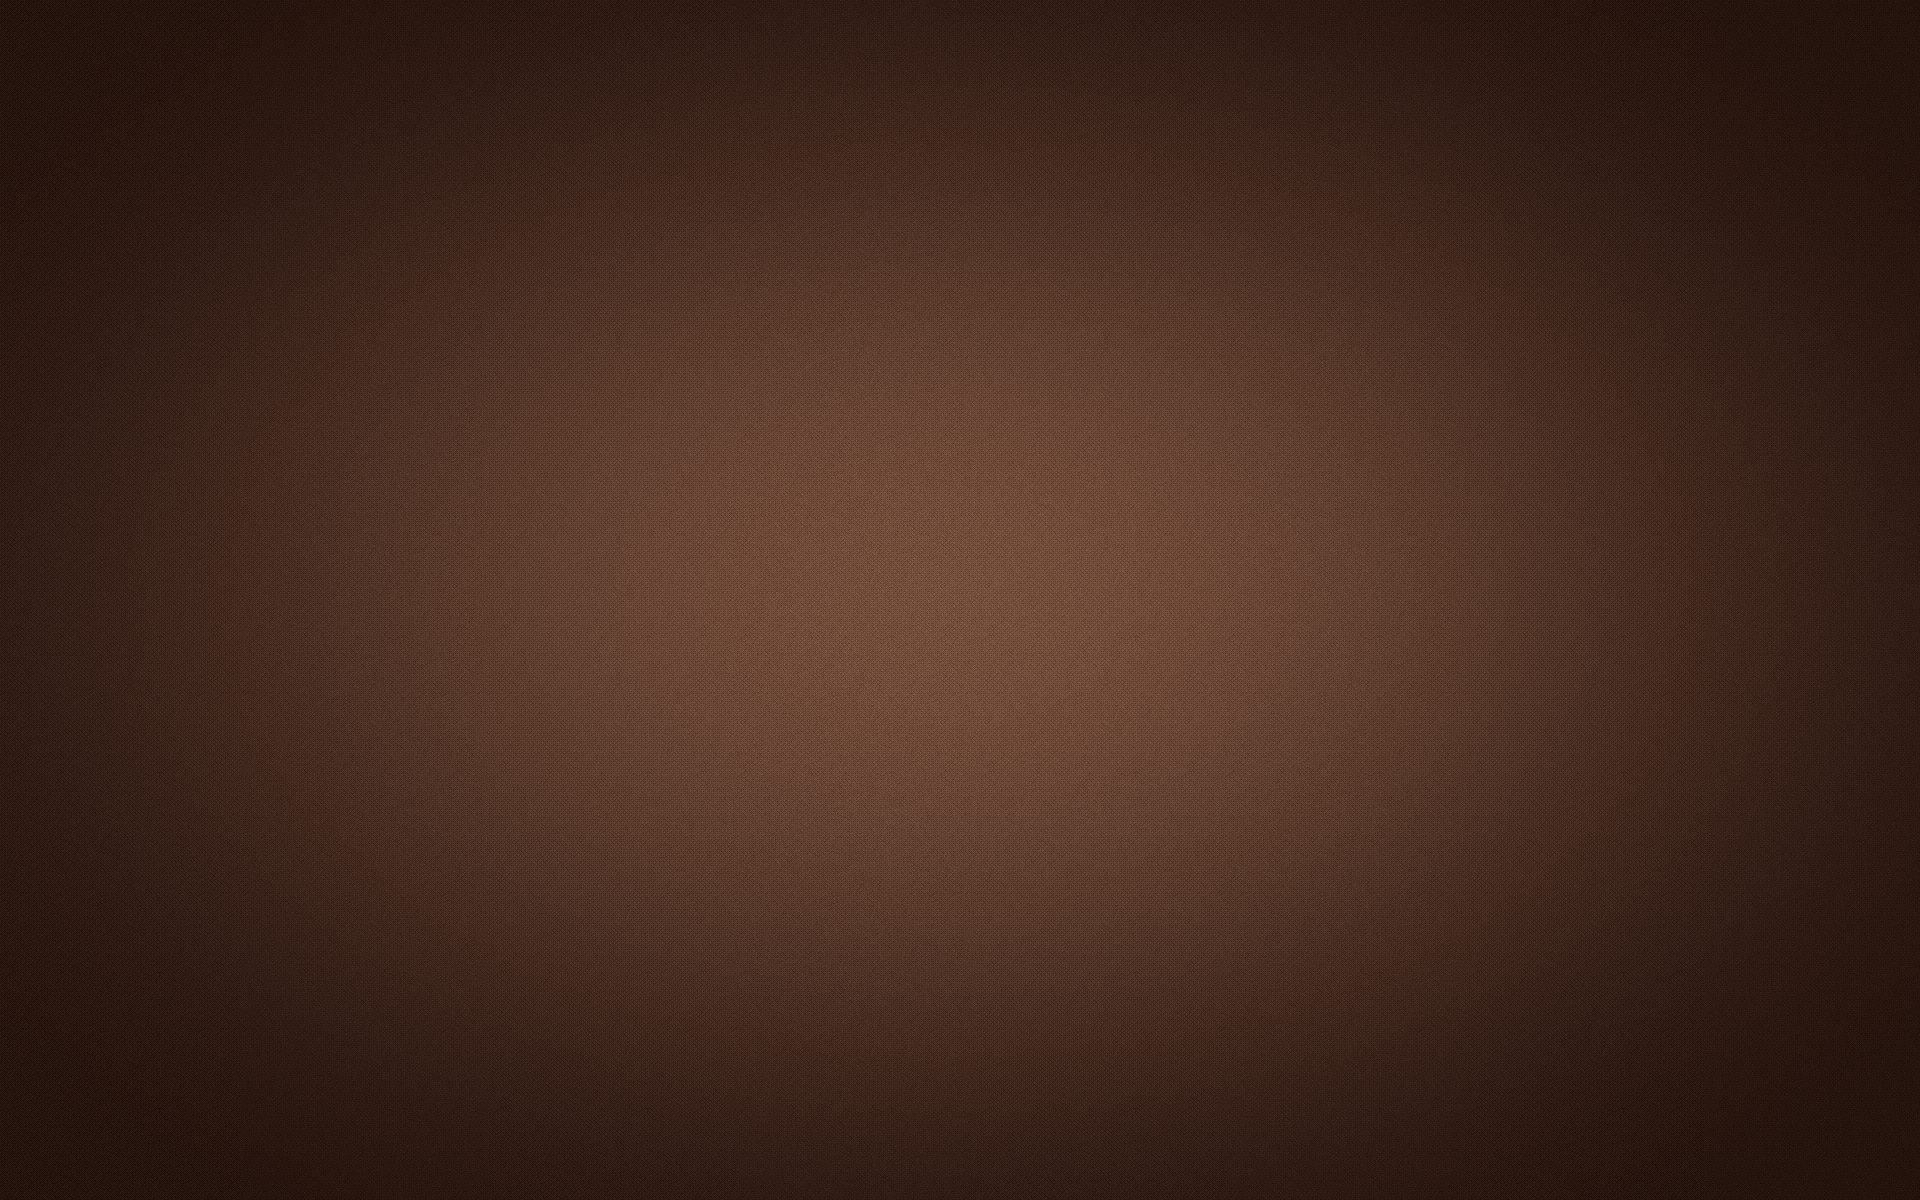 tag brown wallpapers backgrounds - photo #3